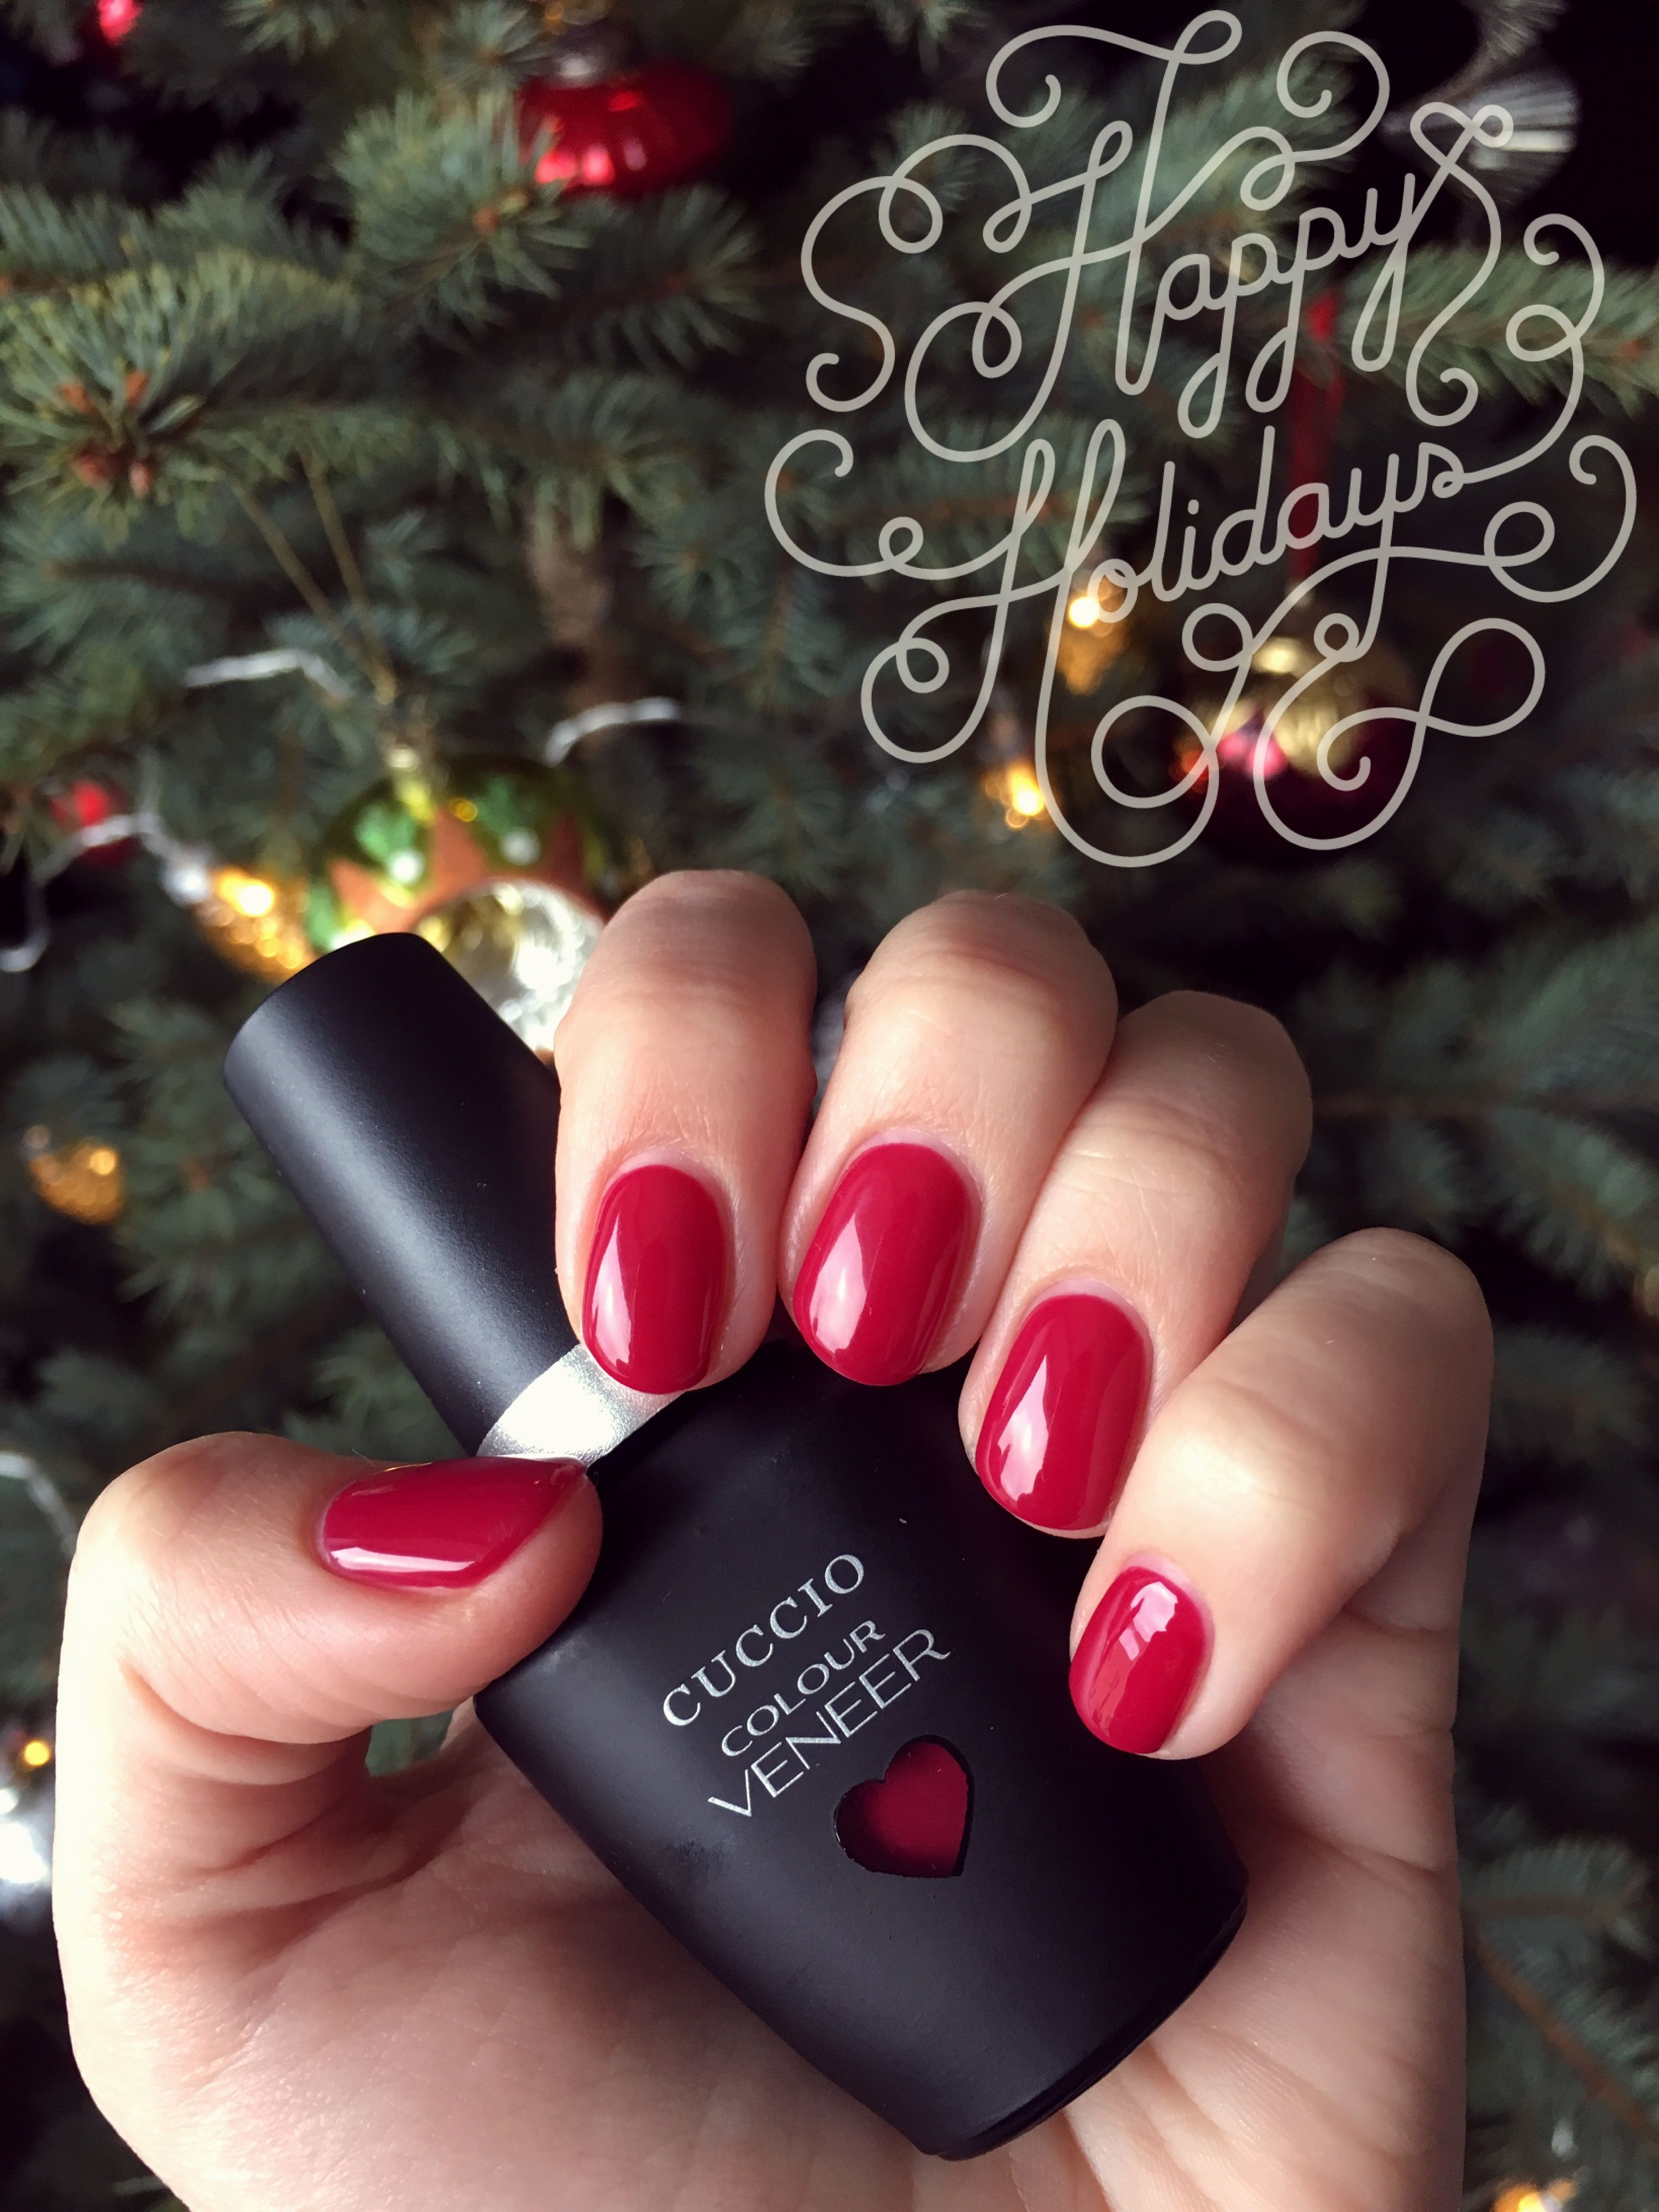 Cuccio Colour Veneer Heart Seoul Perfect Red Christmas Manicure Gel Manicure Manicure How To Do Nails